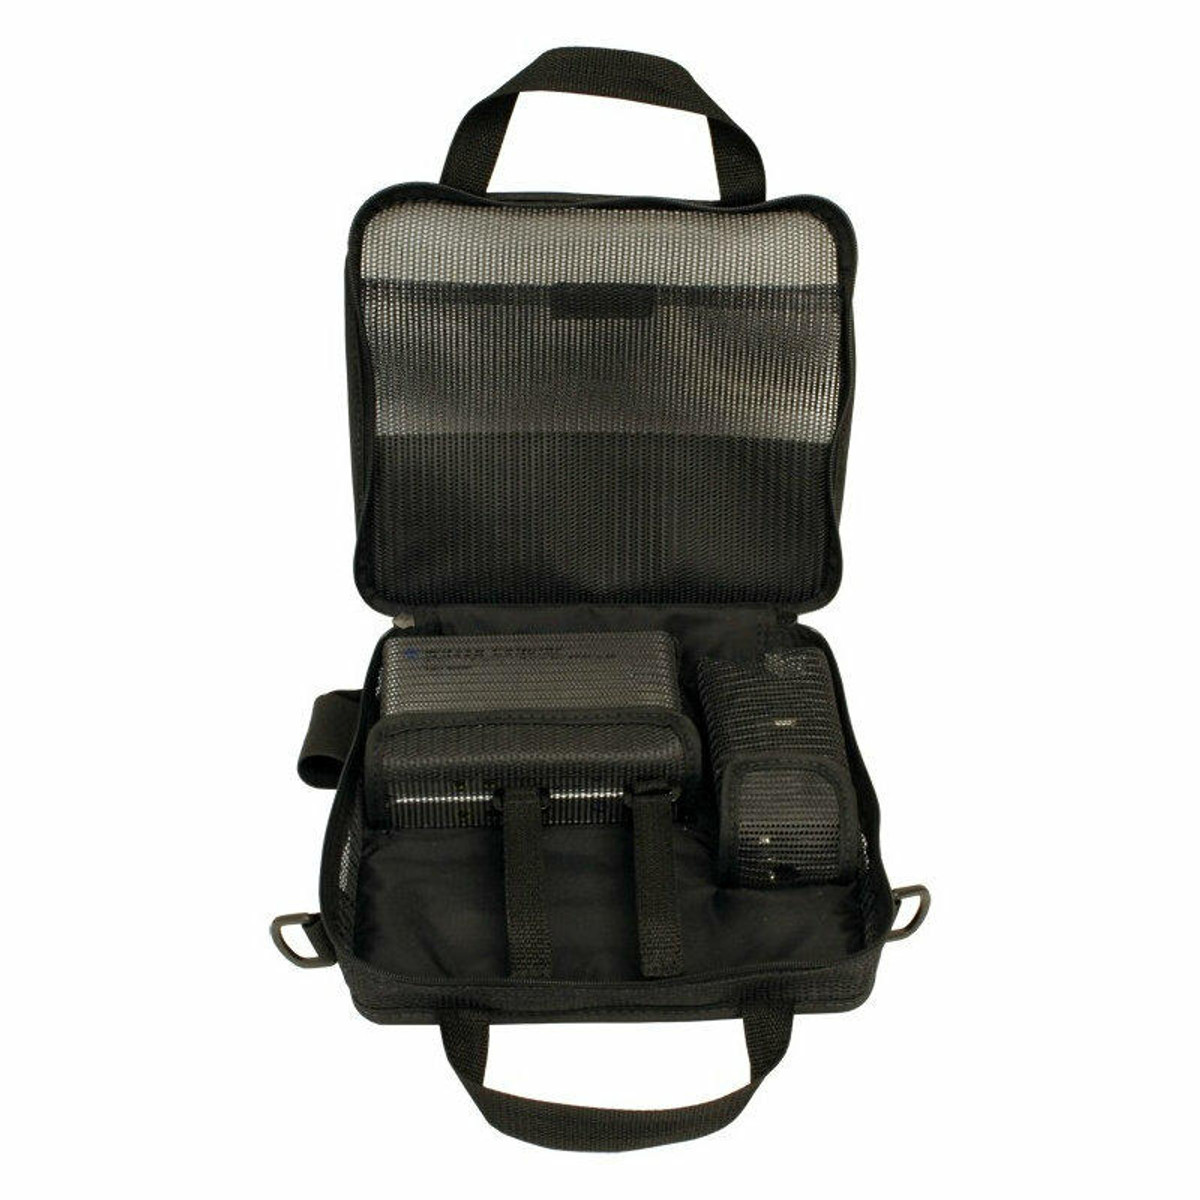 Wilson Electronics weBoost Wilson 859924 Medium Amplifier Carrying Case, soft and vented